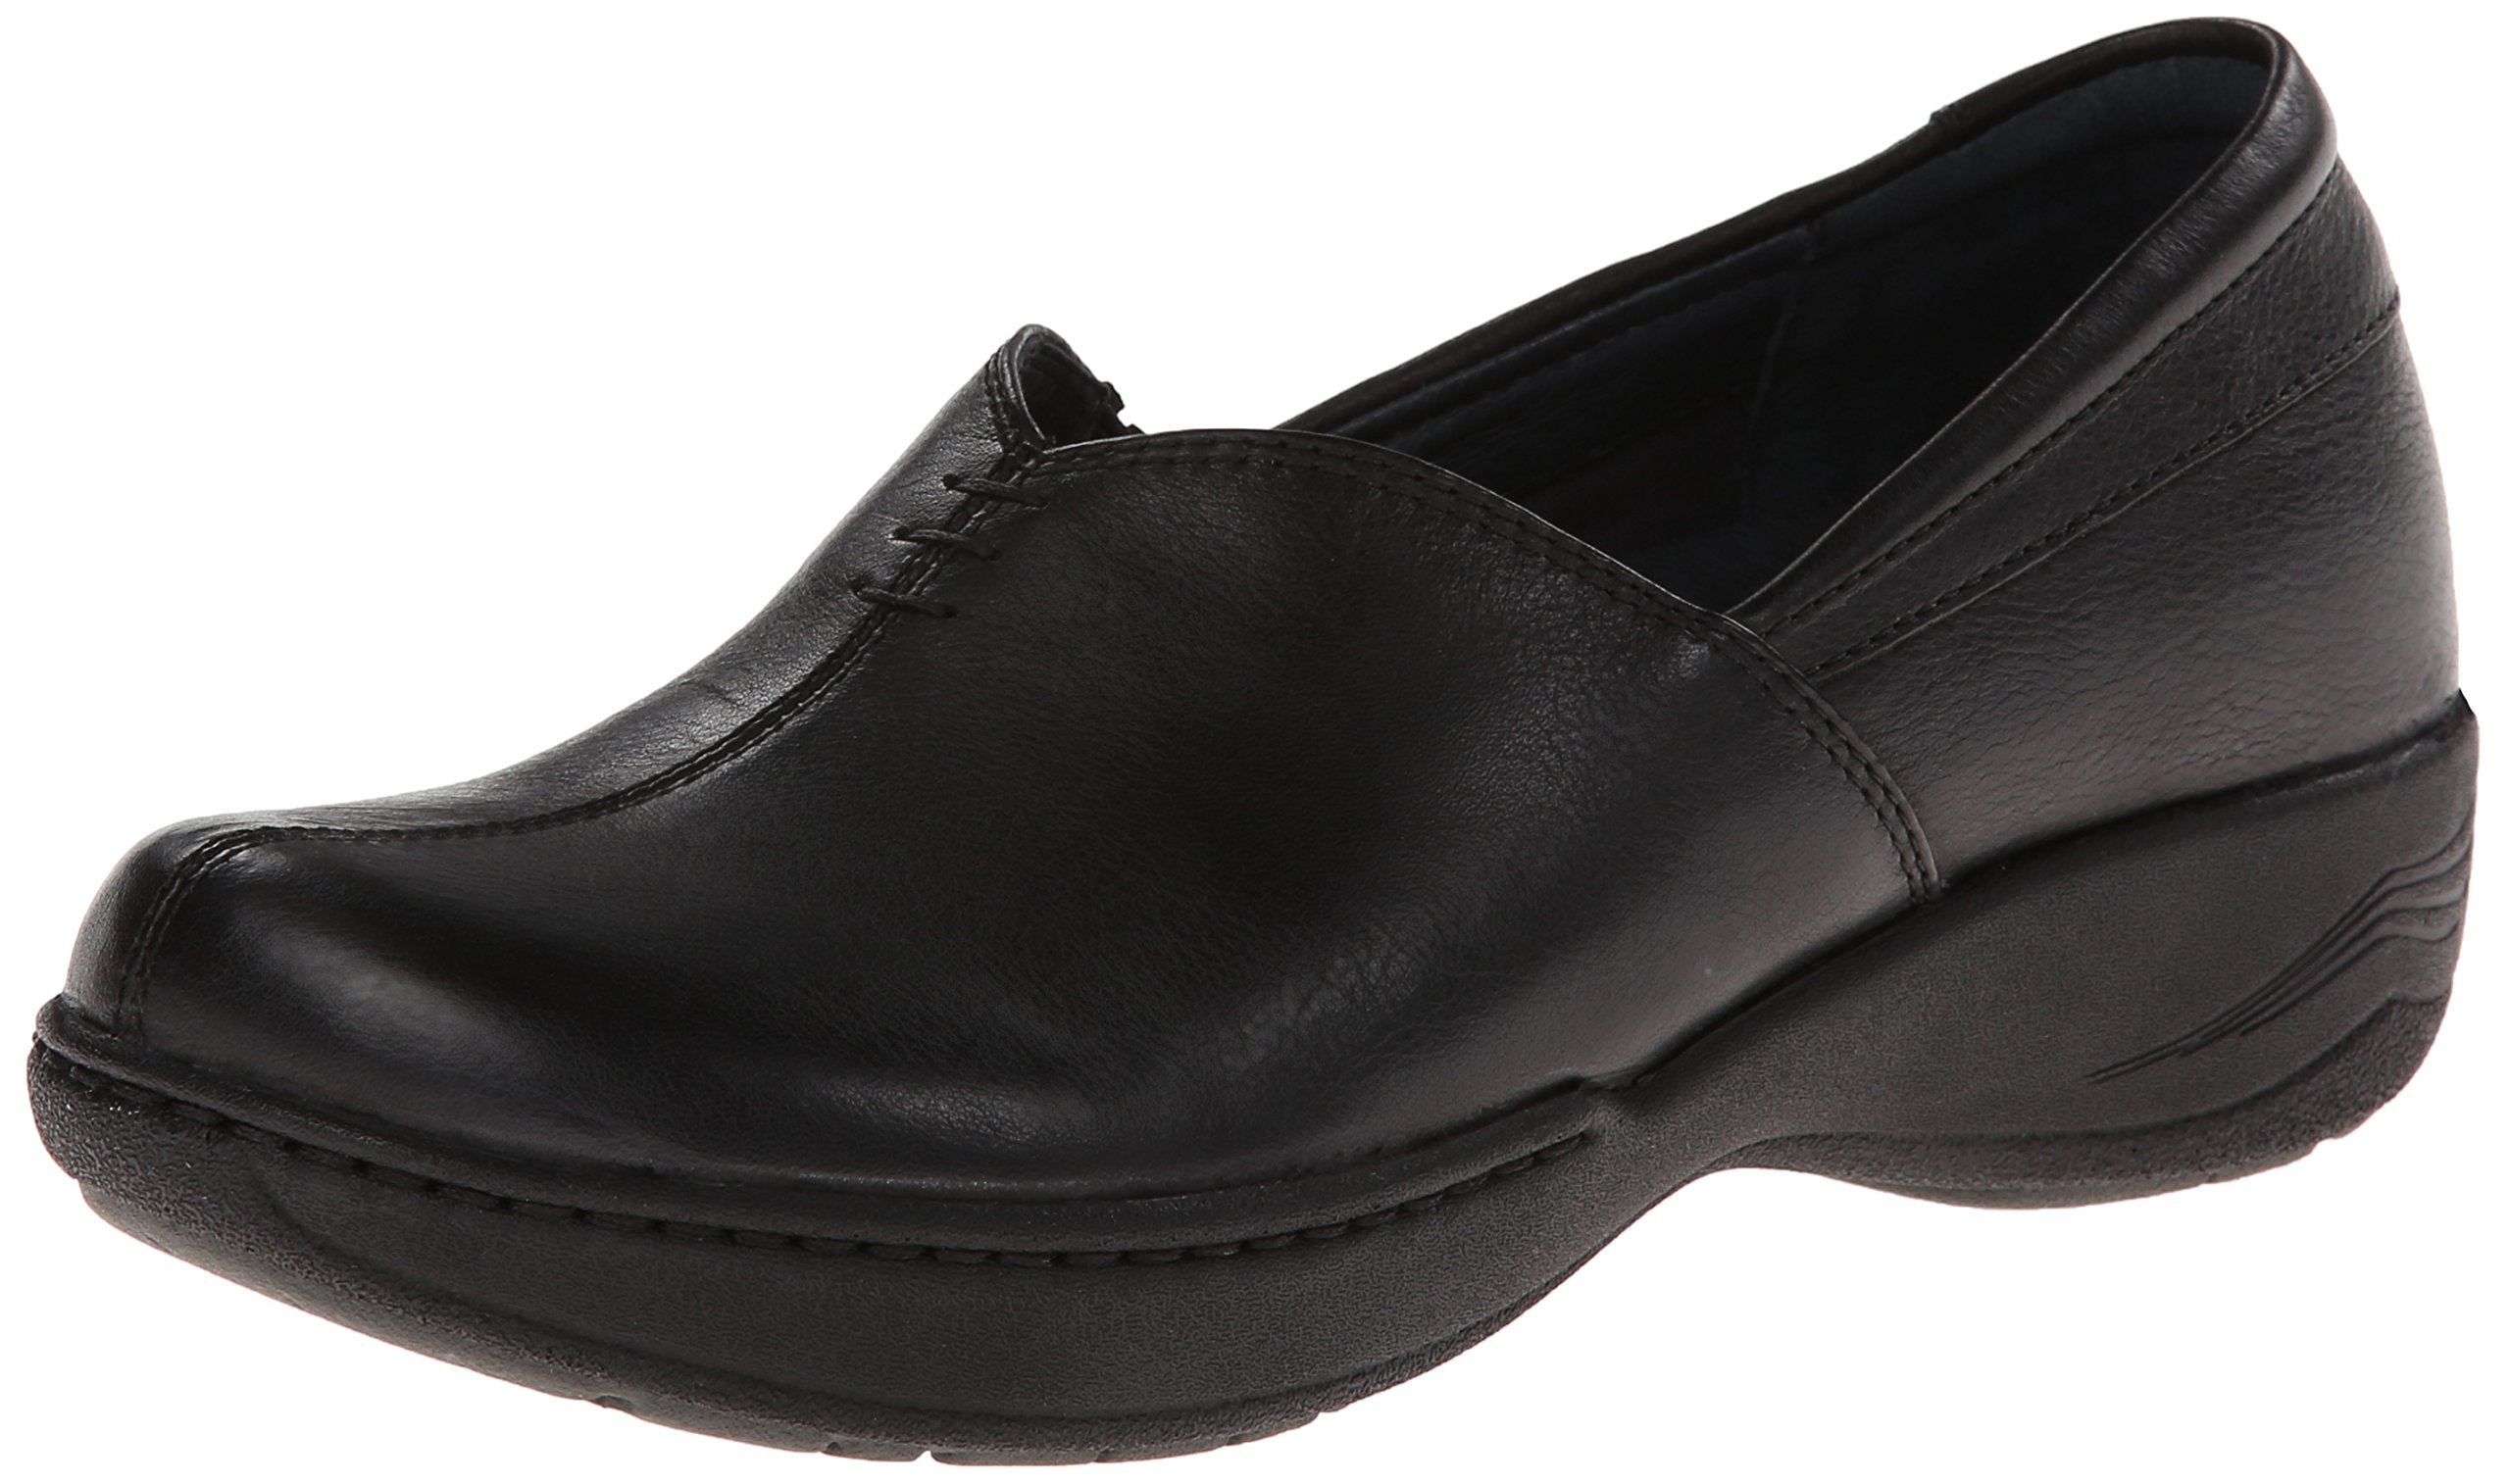 Dansko Women's Abigail Slip-On Loafer,Black Milled Full Grain,42 EU/11.5-12 M US by Dansko